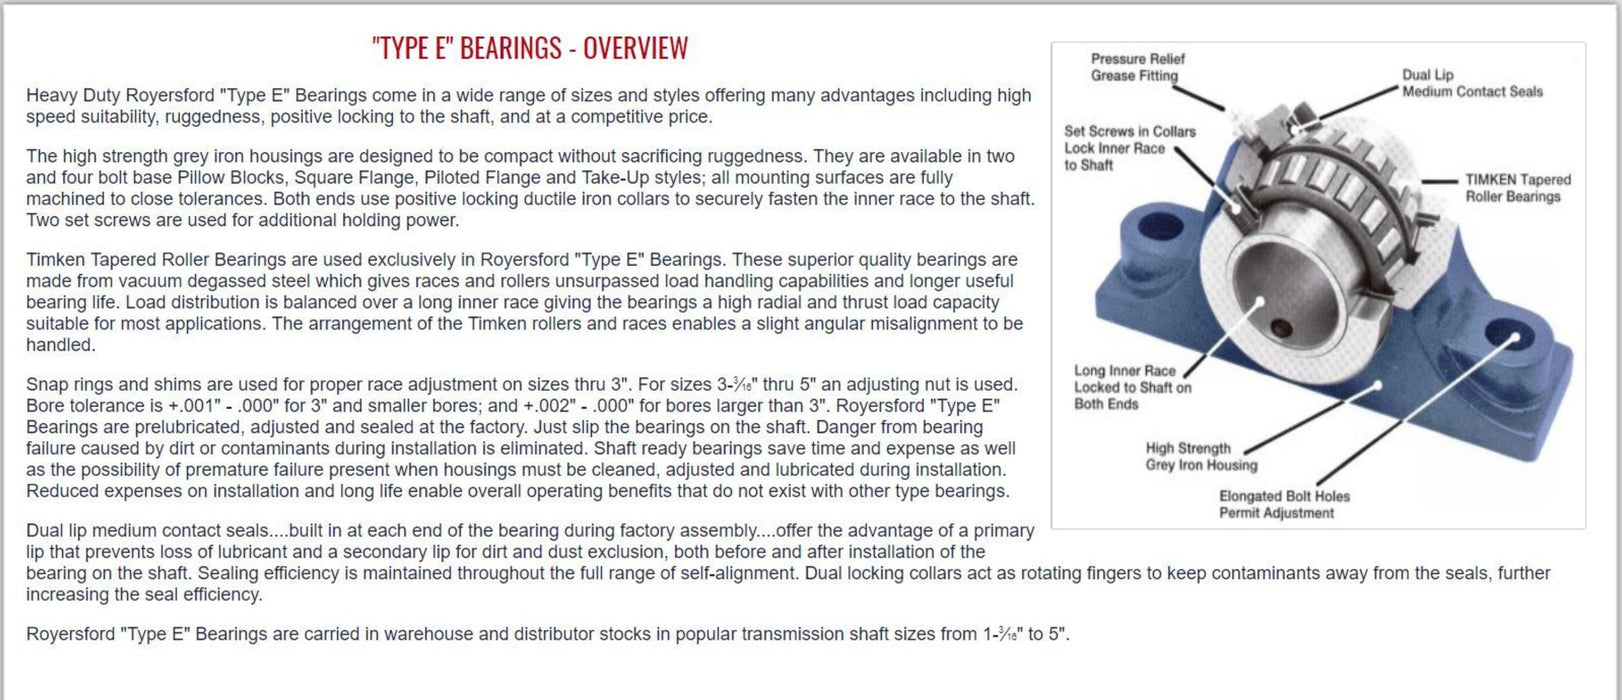 20-05-0203, ROYERSFORD TYPE E 4 Bolt Square Flange Bearing, 2-3/16 with Timken Tapered Roller Bearings